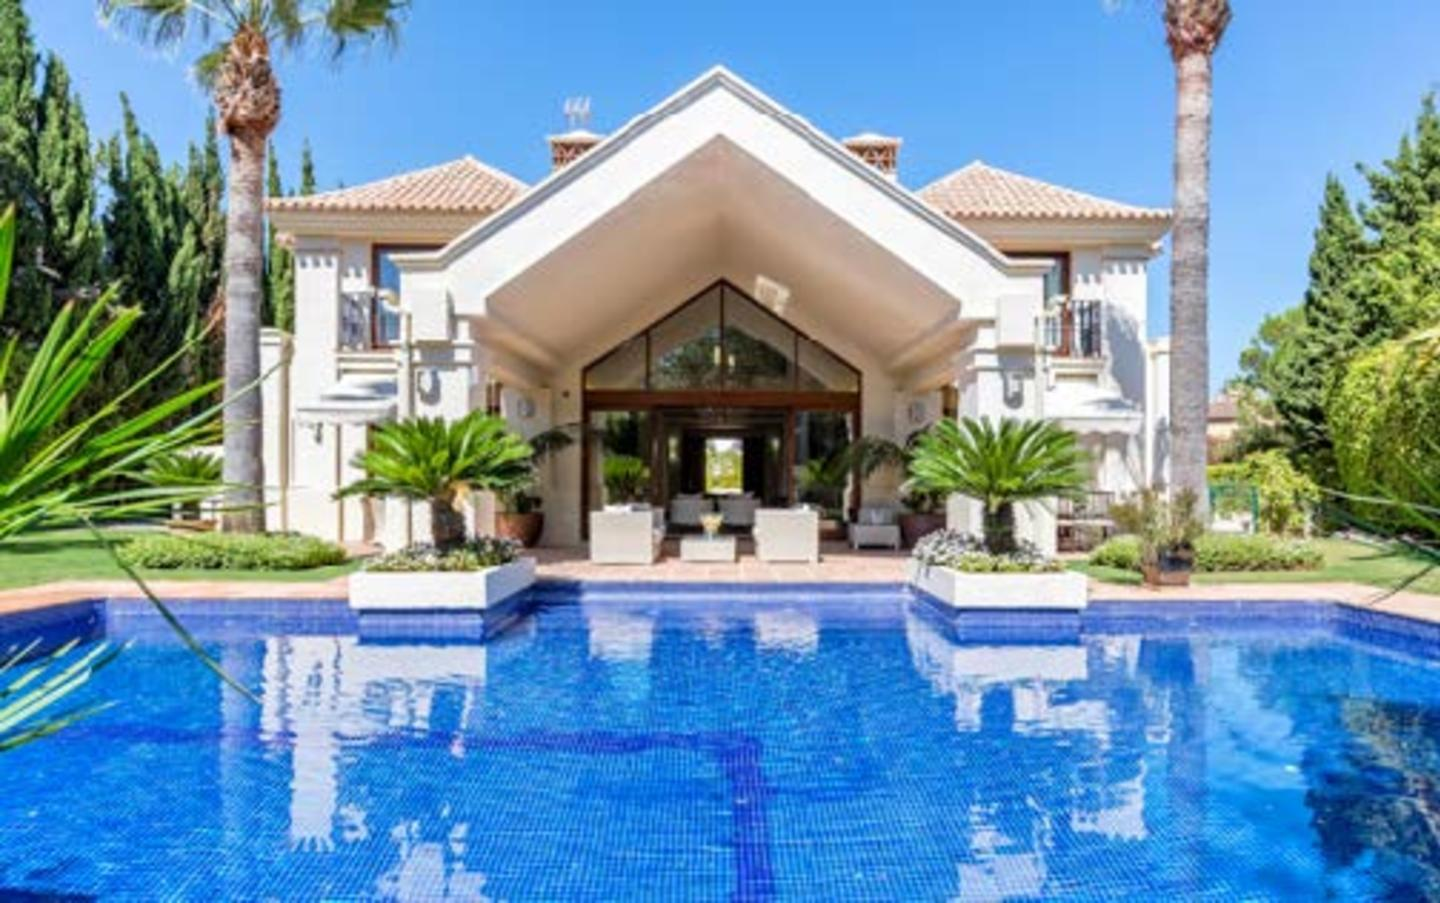 Stunning 5 bedroom villa situated in Aloha